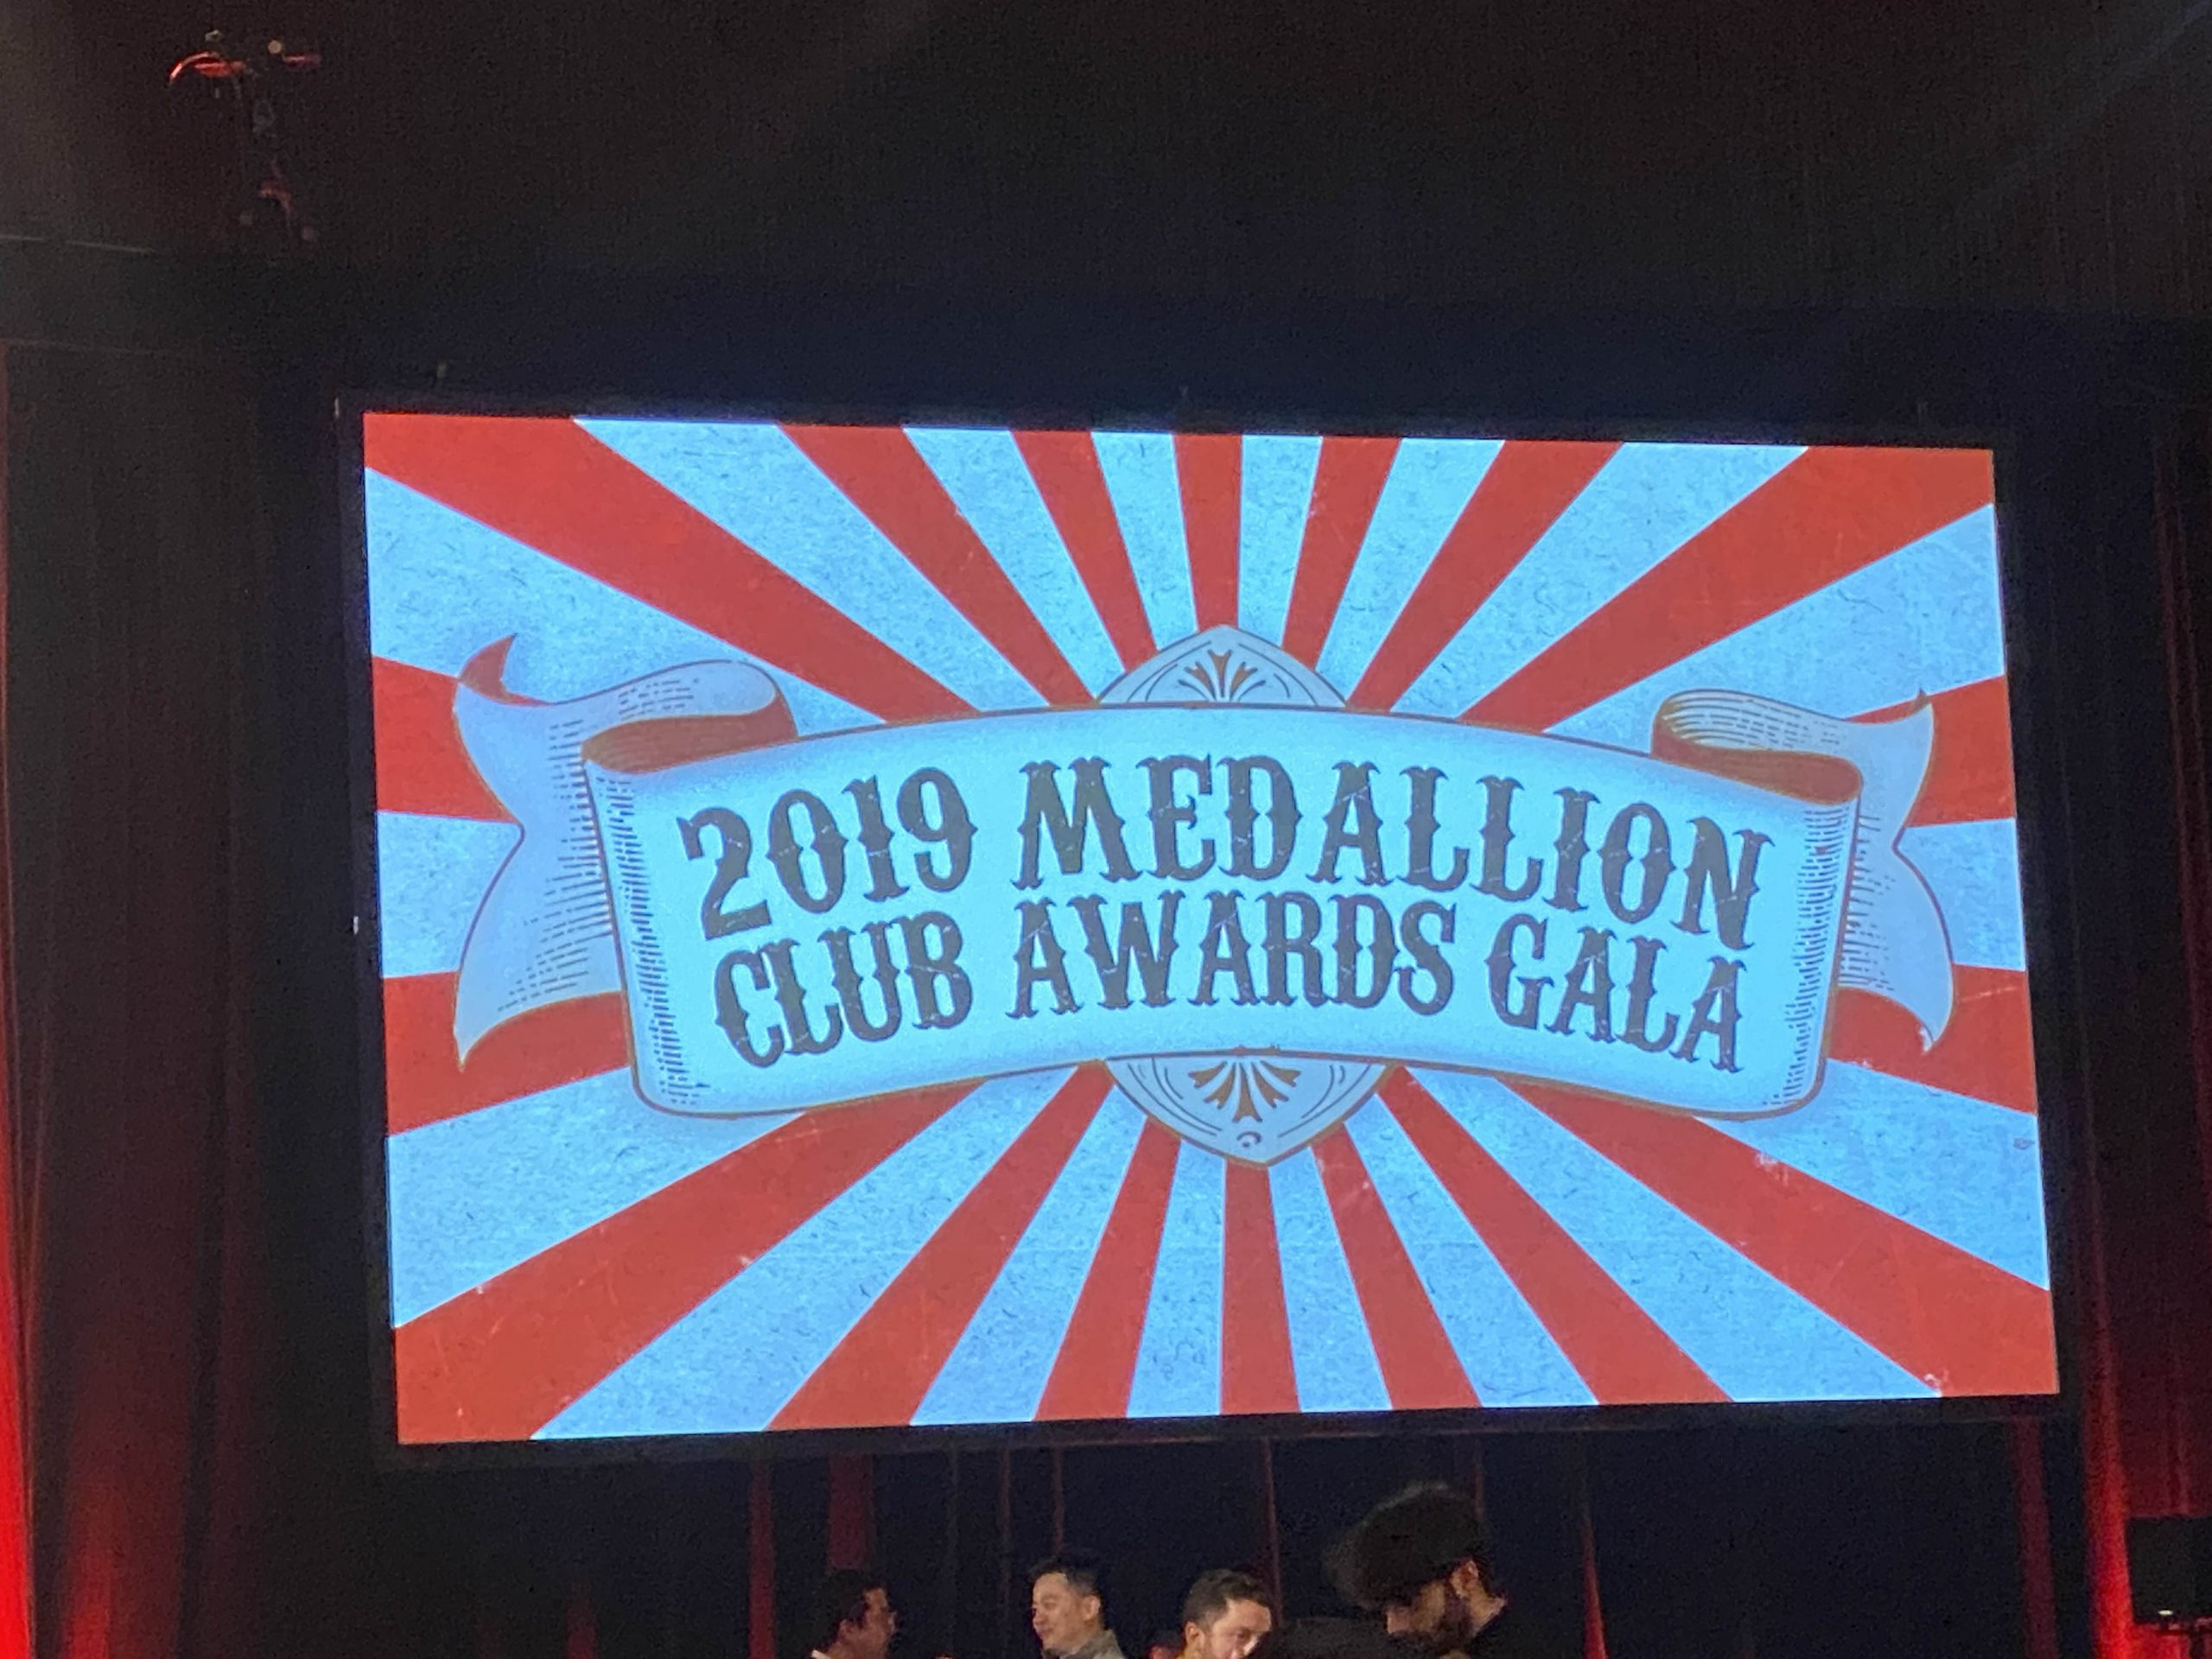 2019 Medallion Club Awards Gala